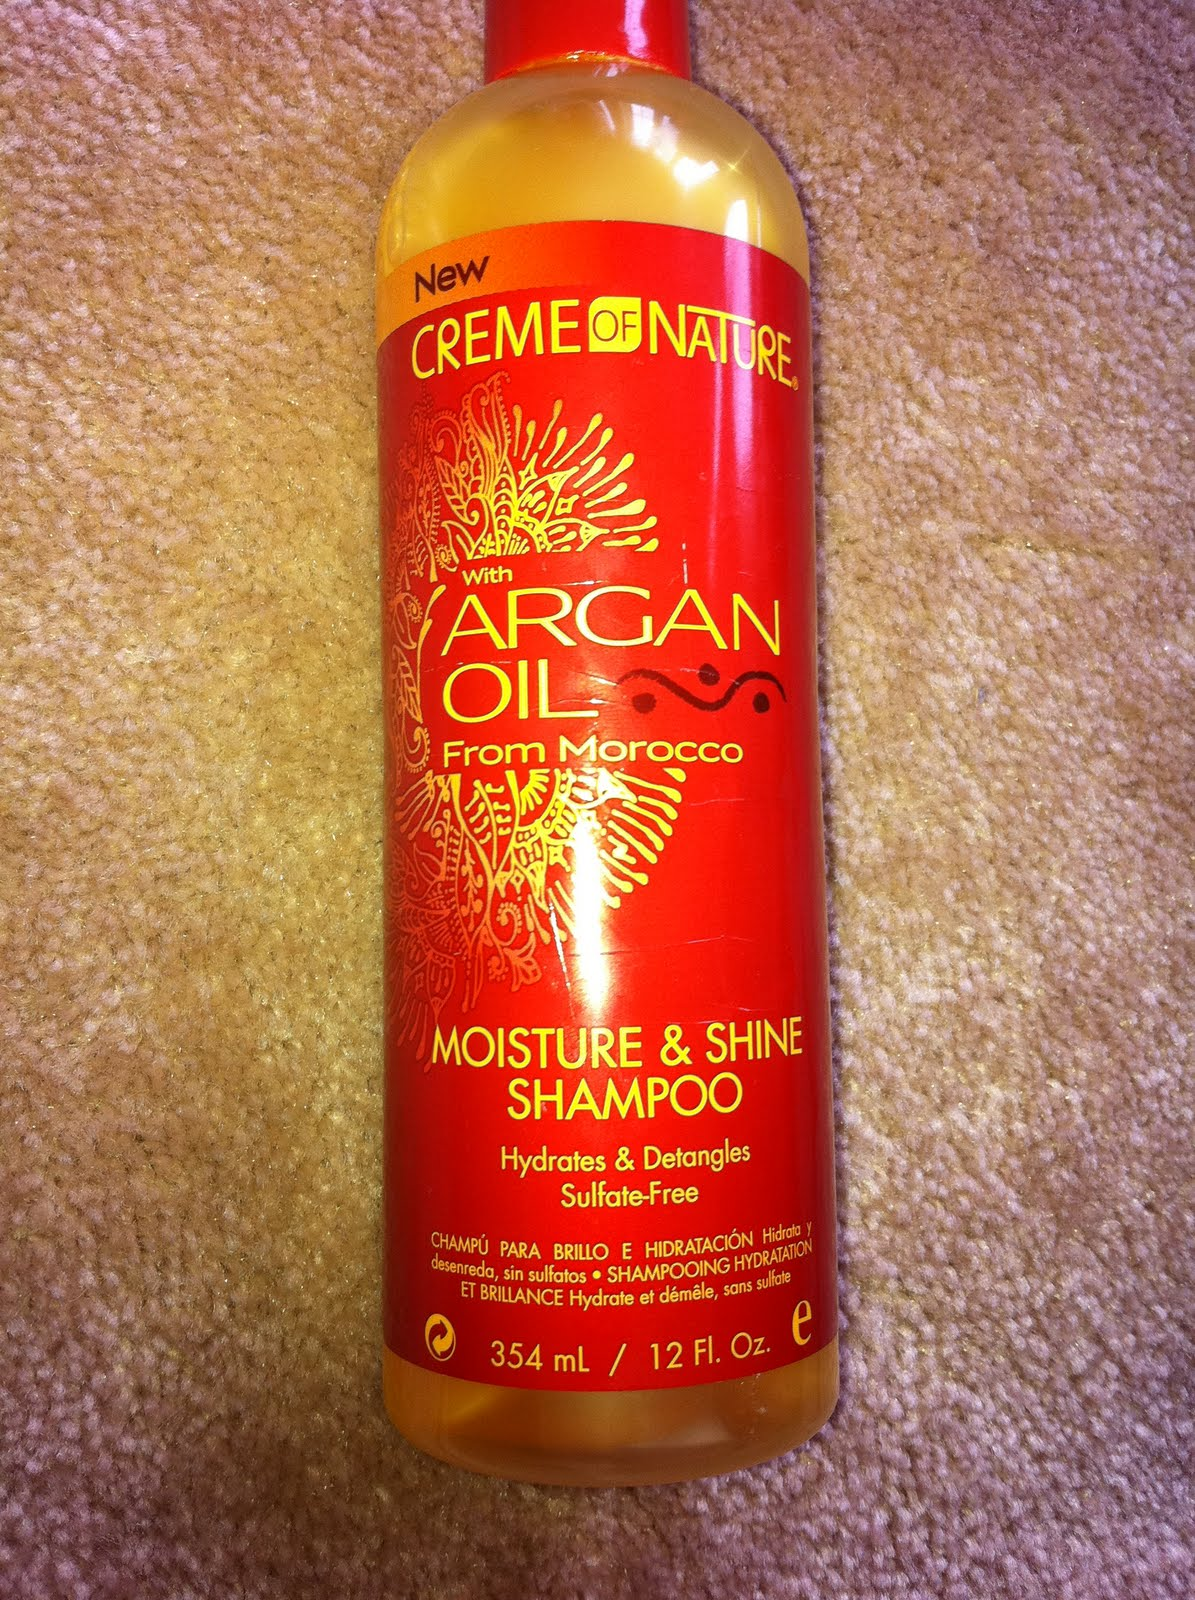 Creme Of Nature Argan Shampoo Review